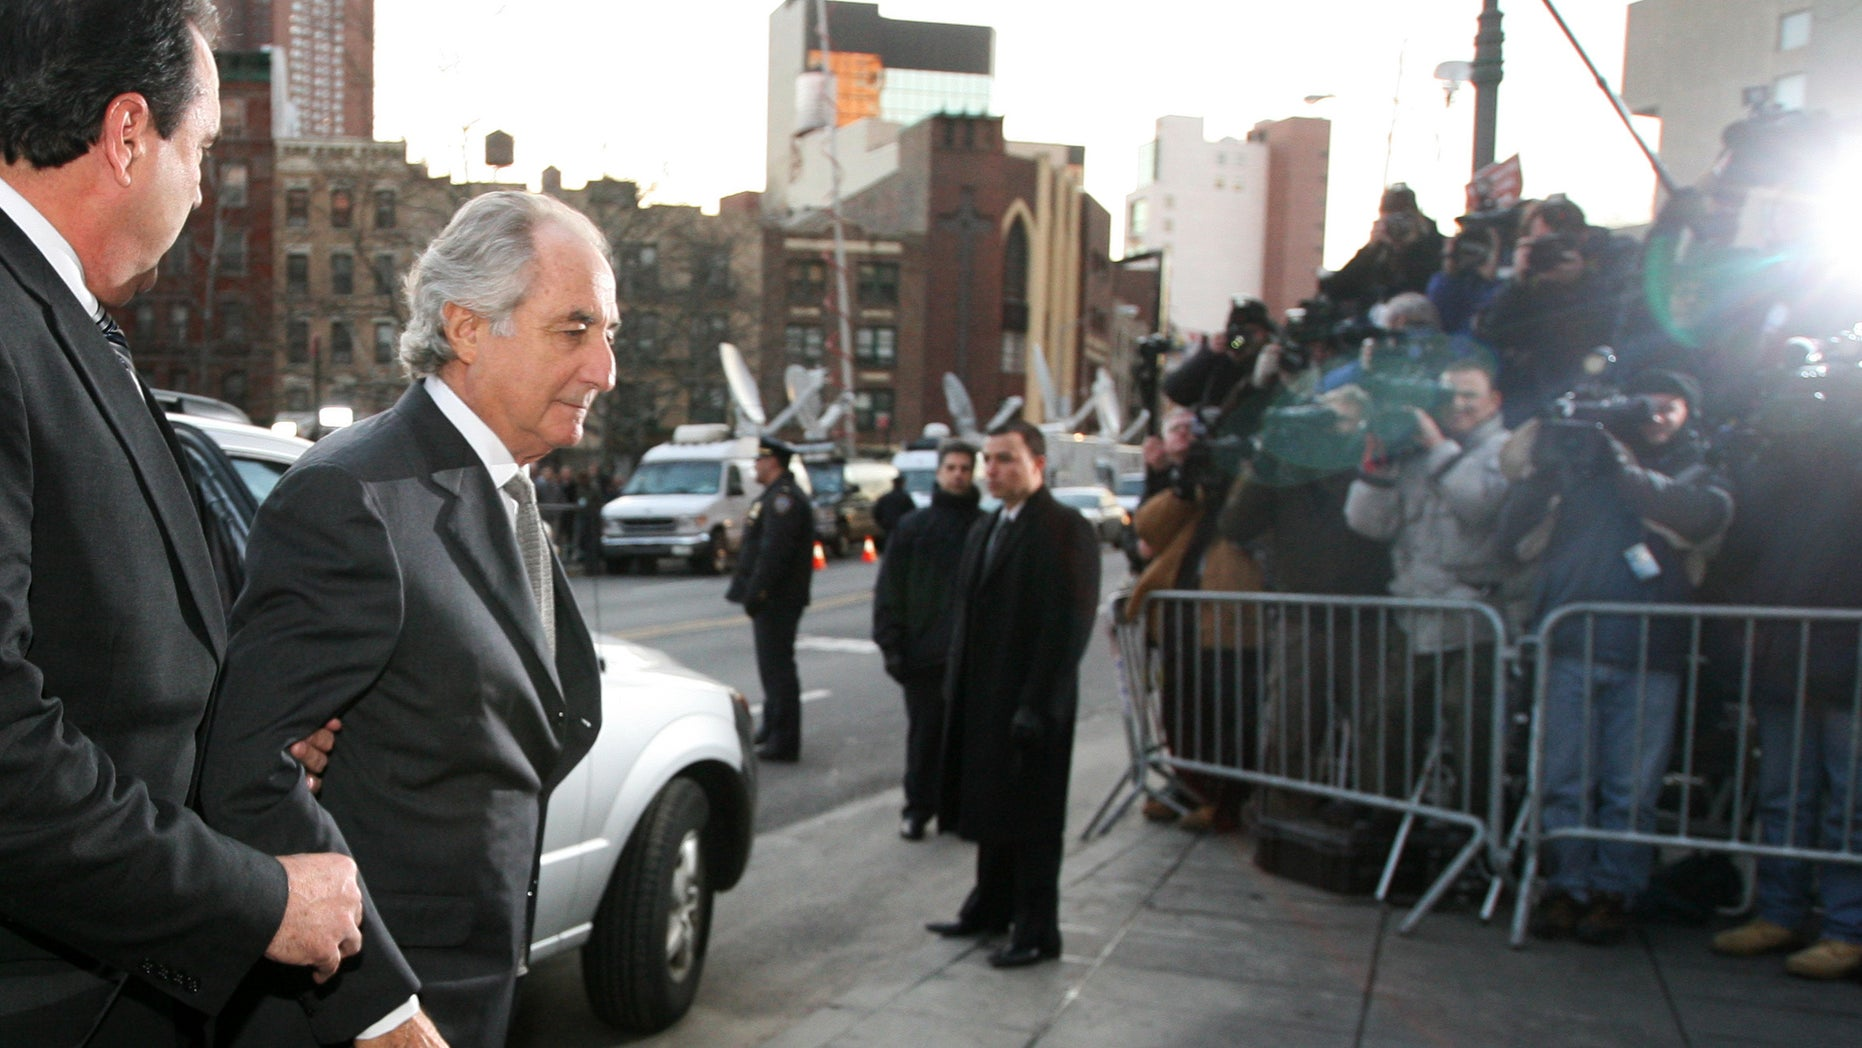 Bernard Madoff arrives at federal court in New York.